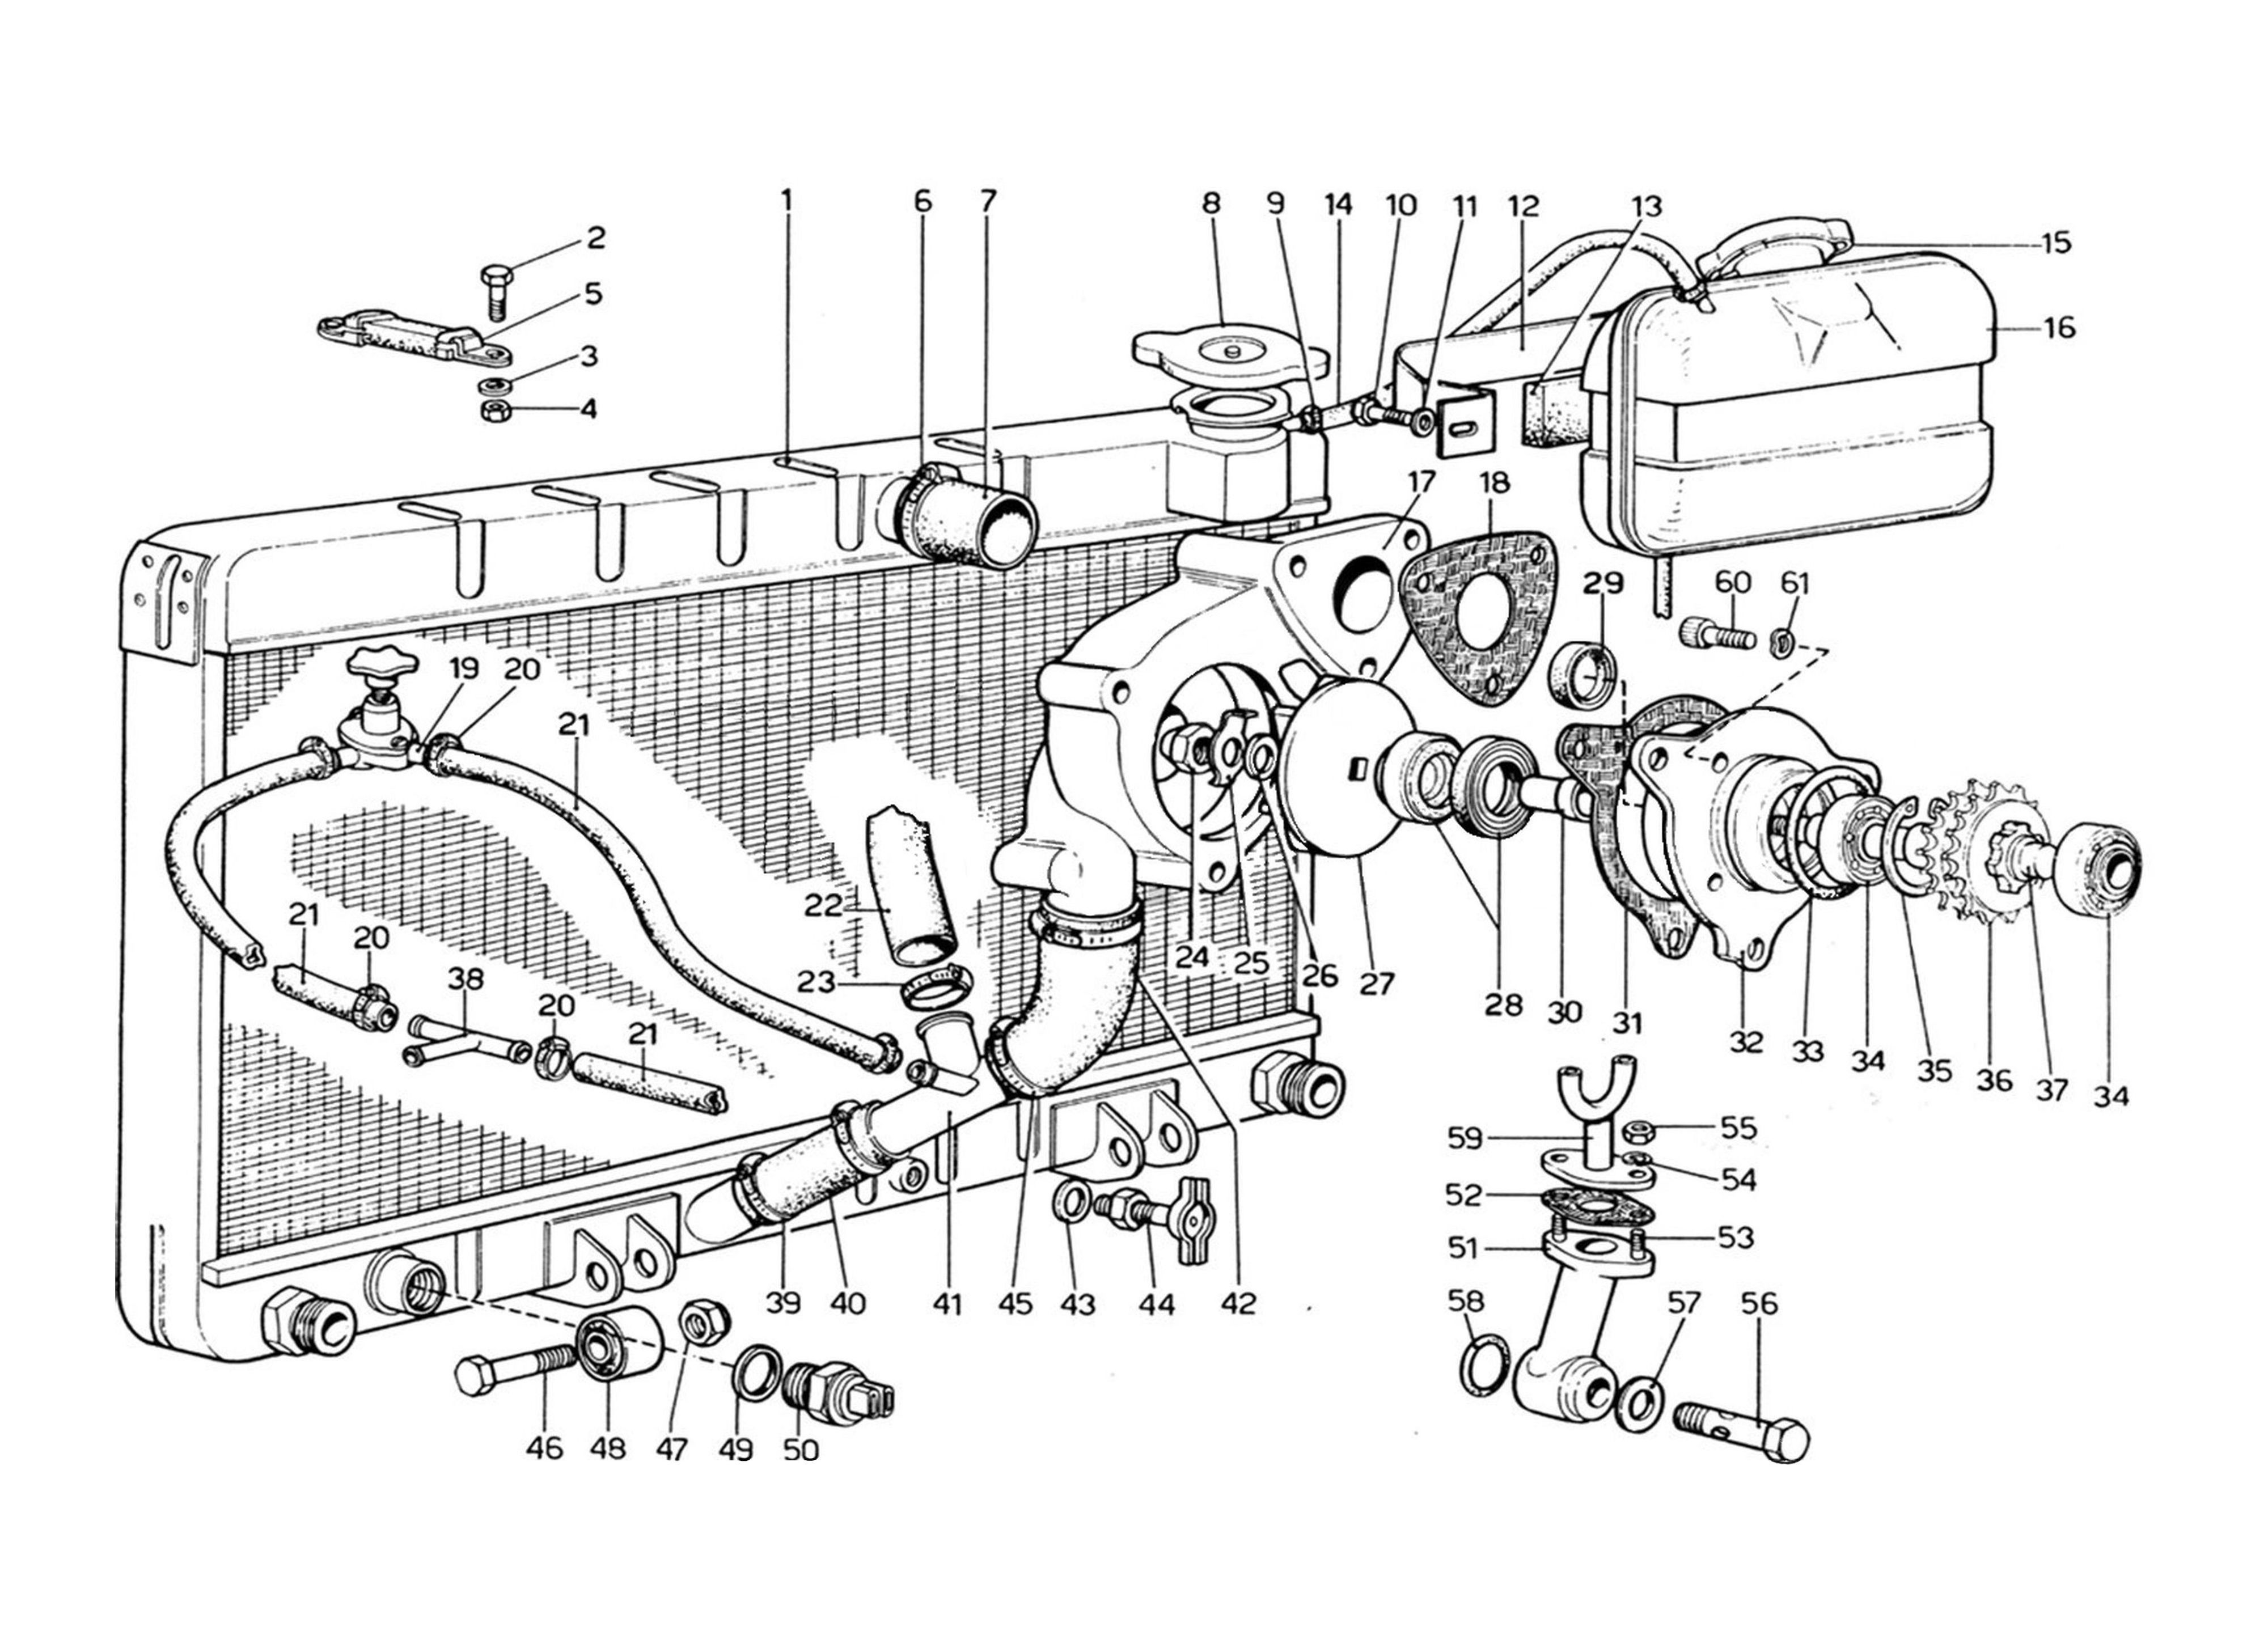 Table 9a - Cooling System - Water Pump & Radiator (1974 Revision)